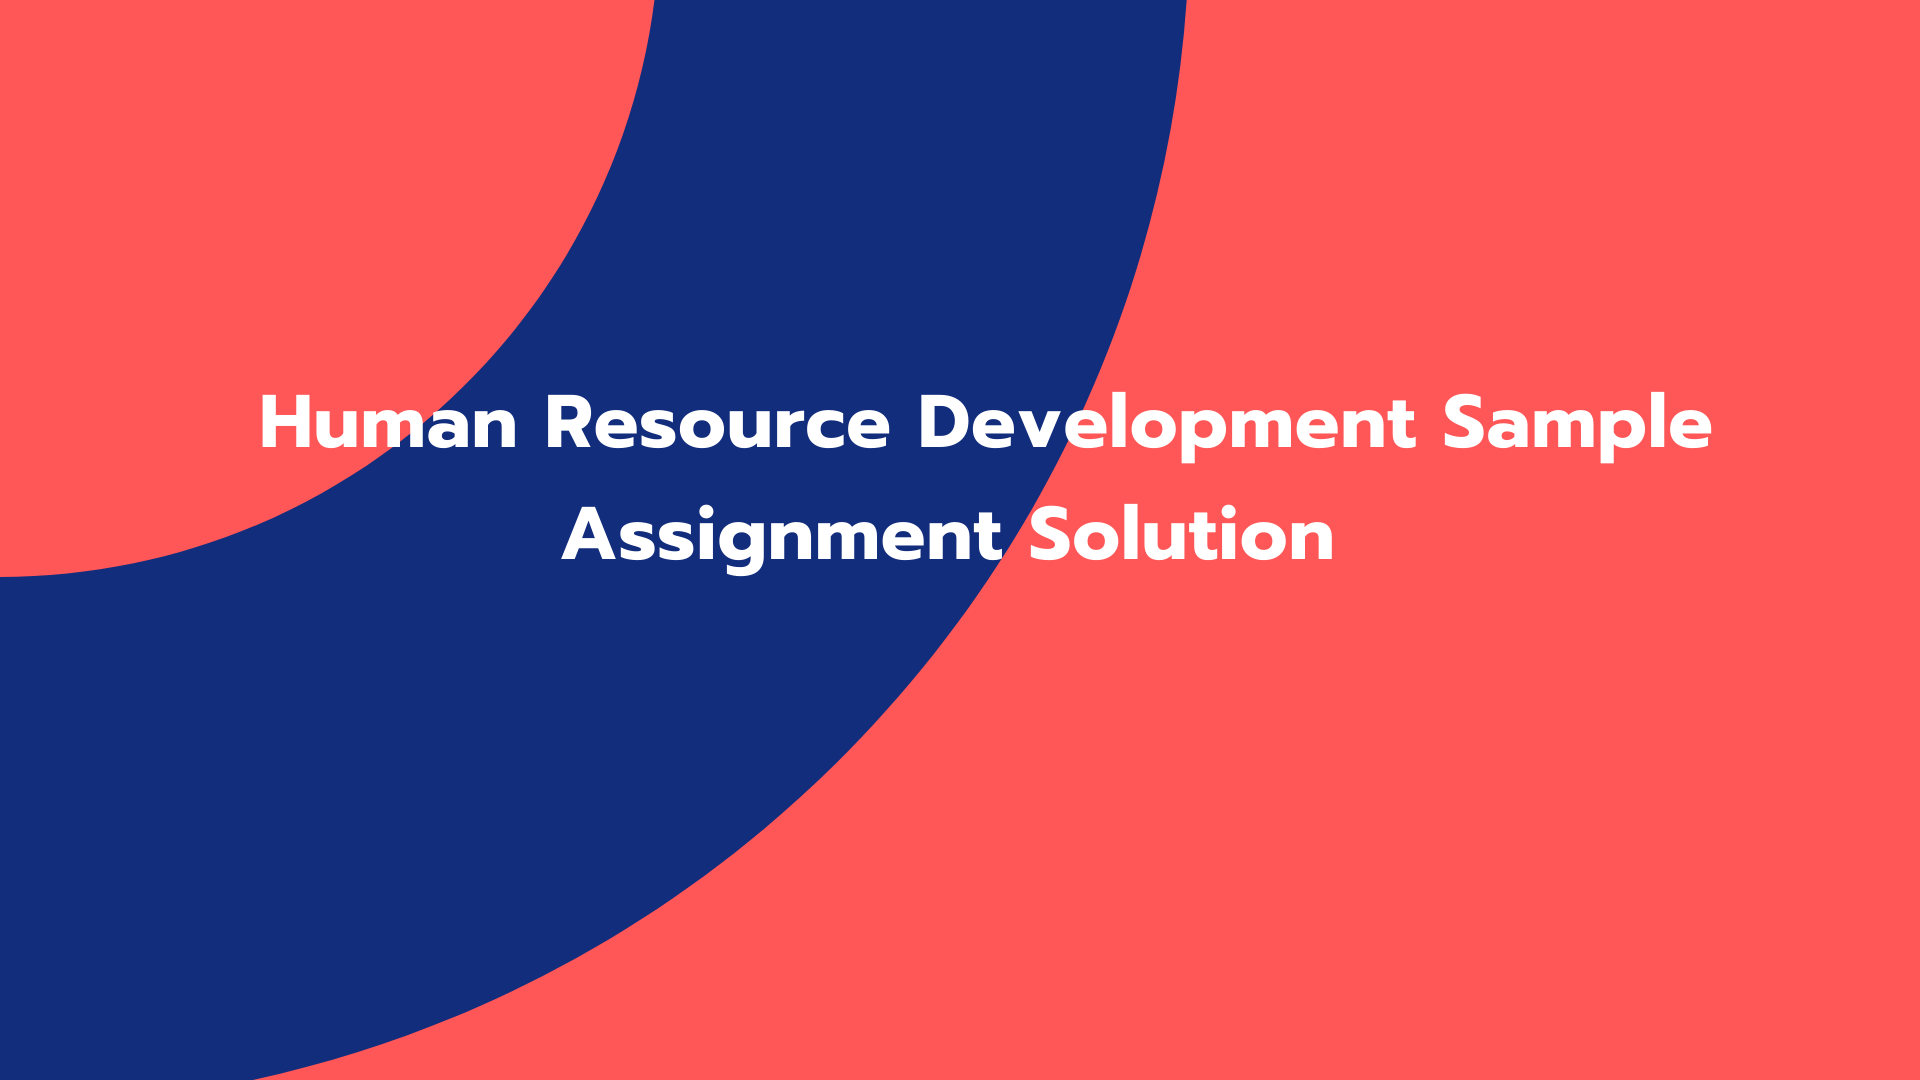 Human Resource Development Sample Assignment Solution